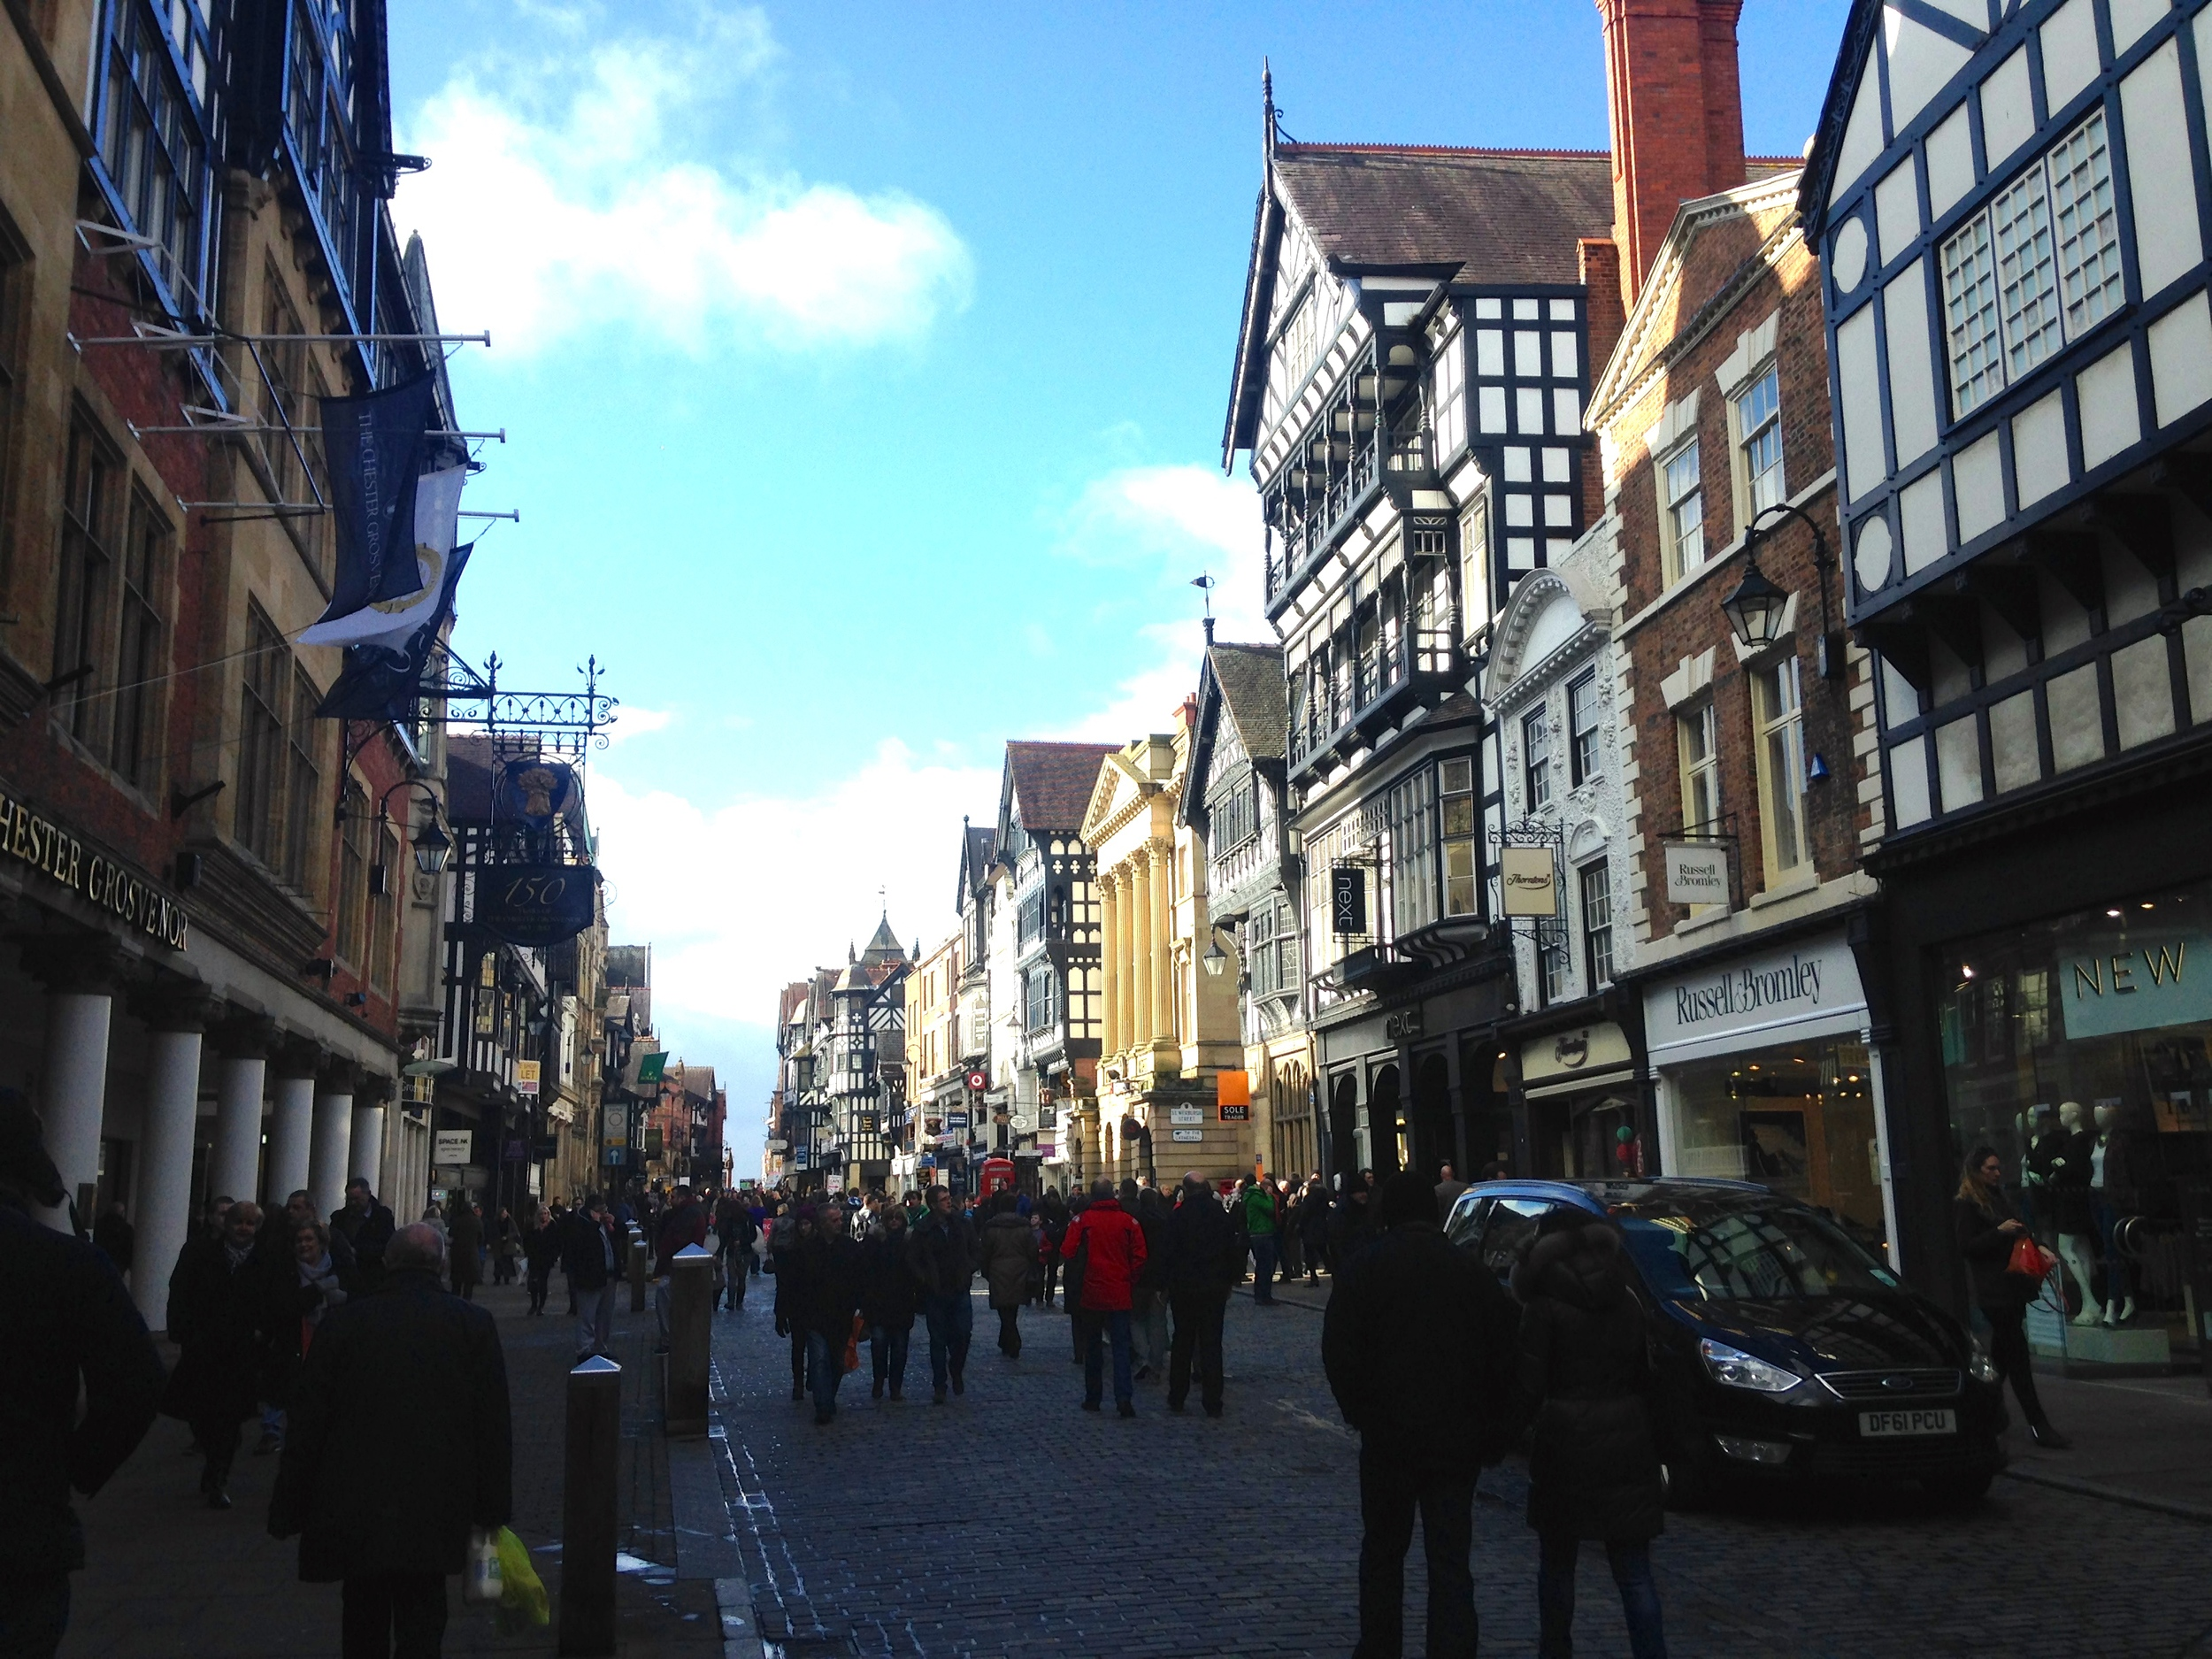 The main shopping street in Chester.